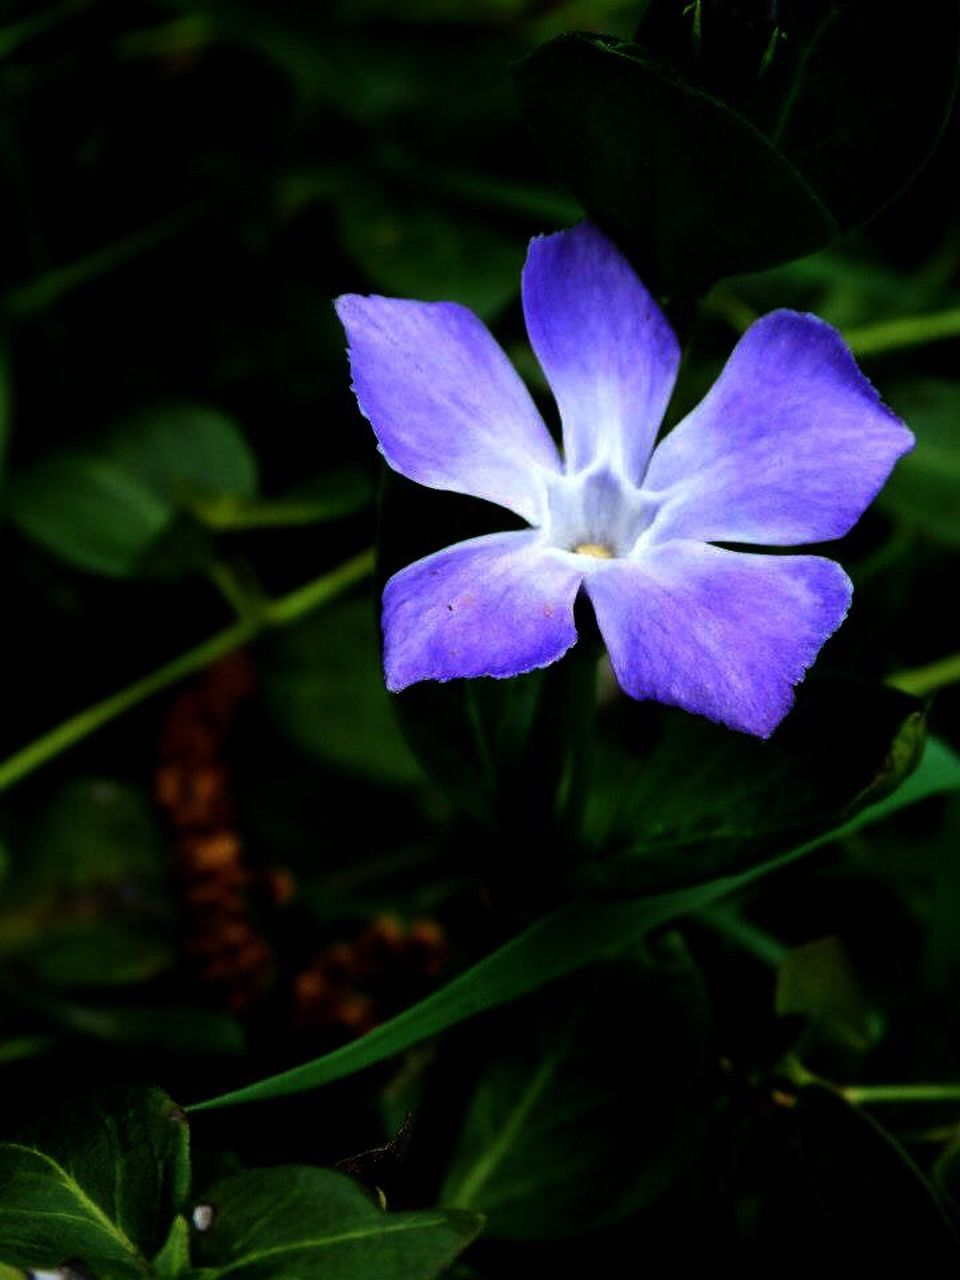 flower, petal, growth, flower head, fragility, beauty in nature, freshness, nature, plant, blooming, no people, close-up, outdoors, day, leaf, crocus